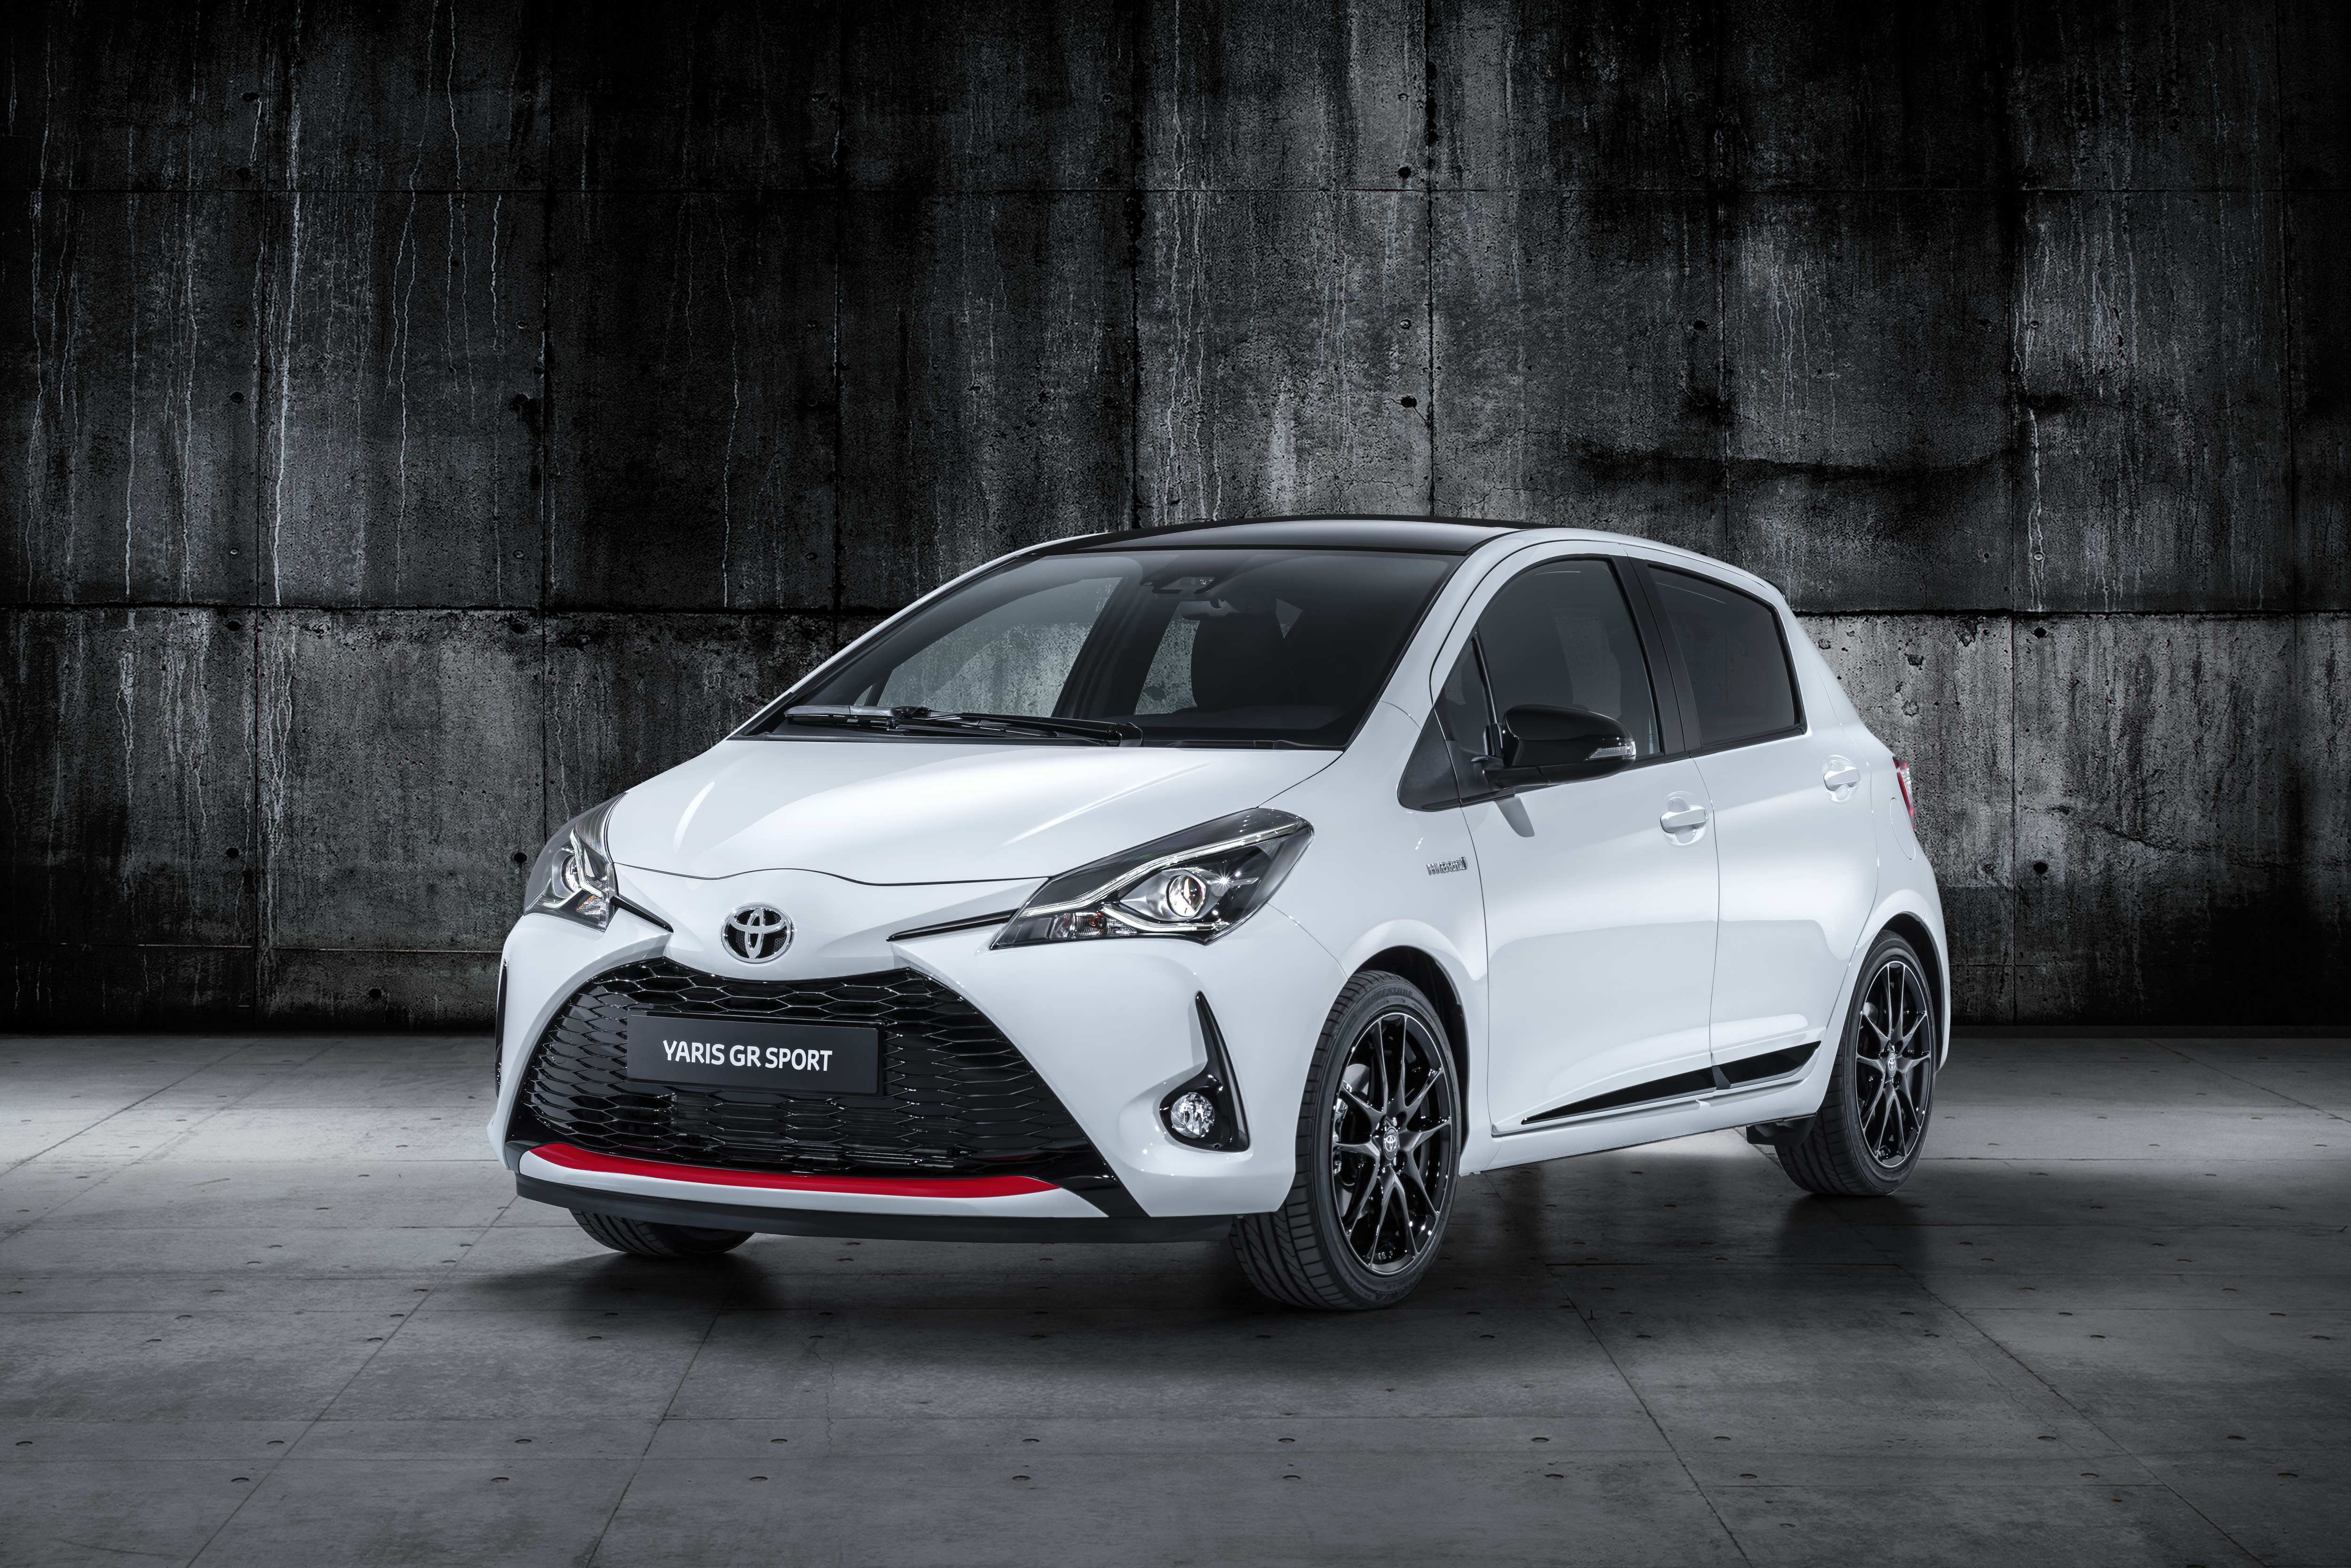 46 Best Review Best Iq Toyota 2019 New Engine Redesign and Concept with Best Iq Toyota 2019 New Engine